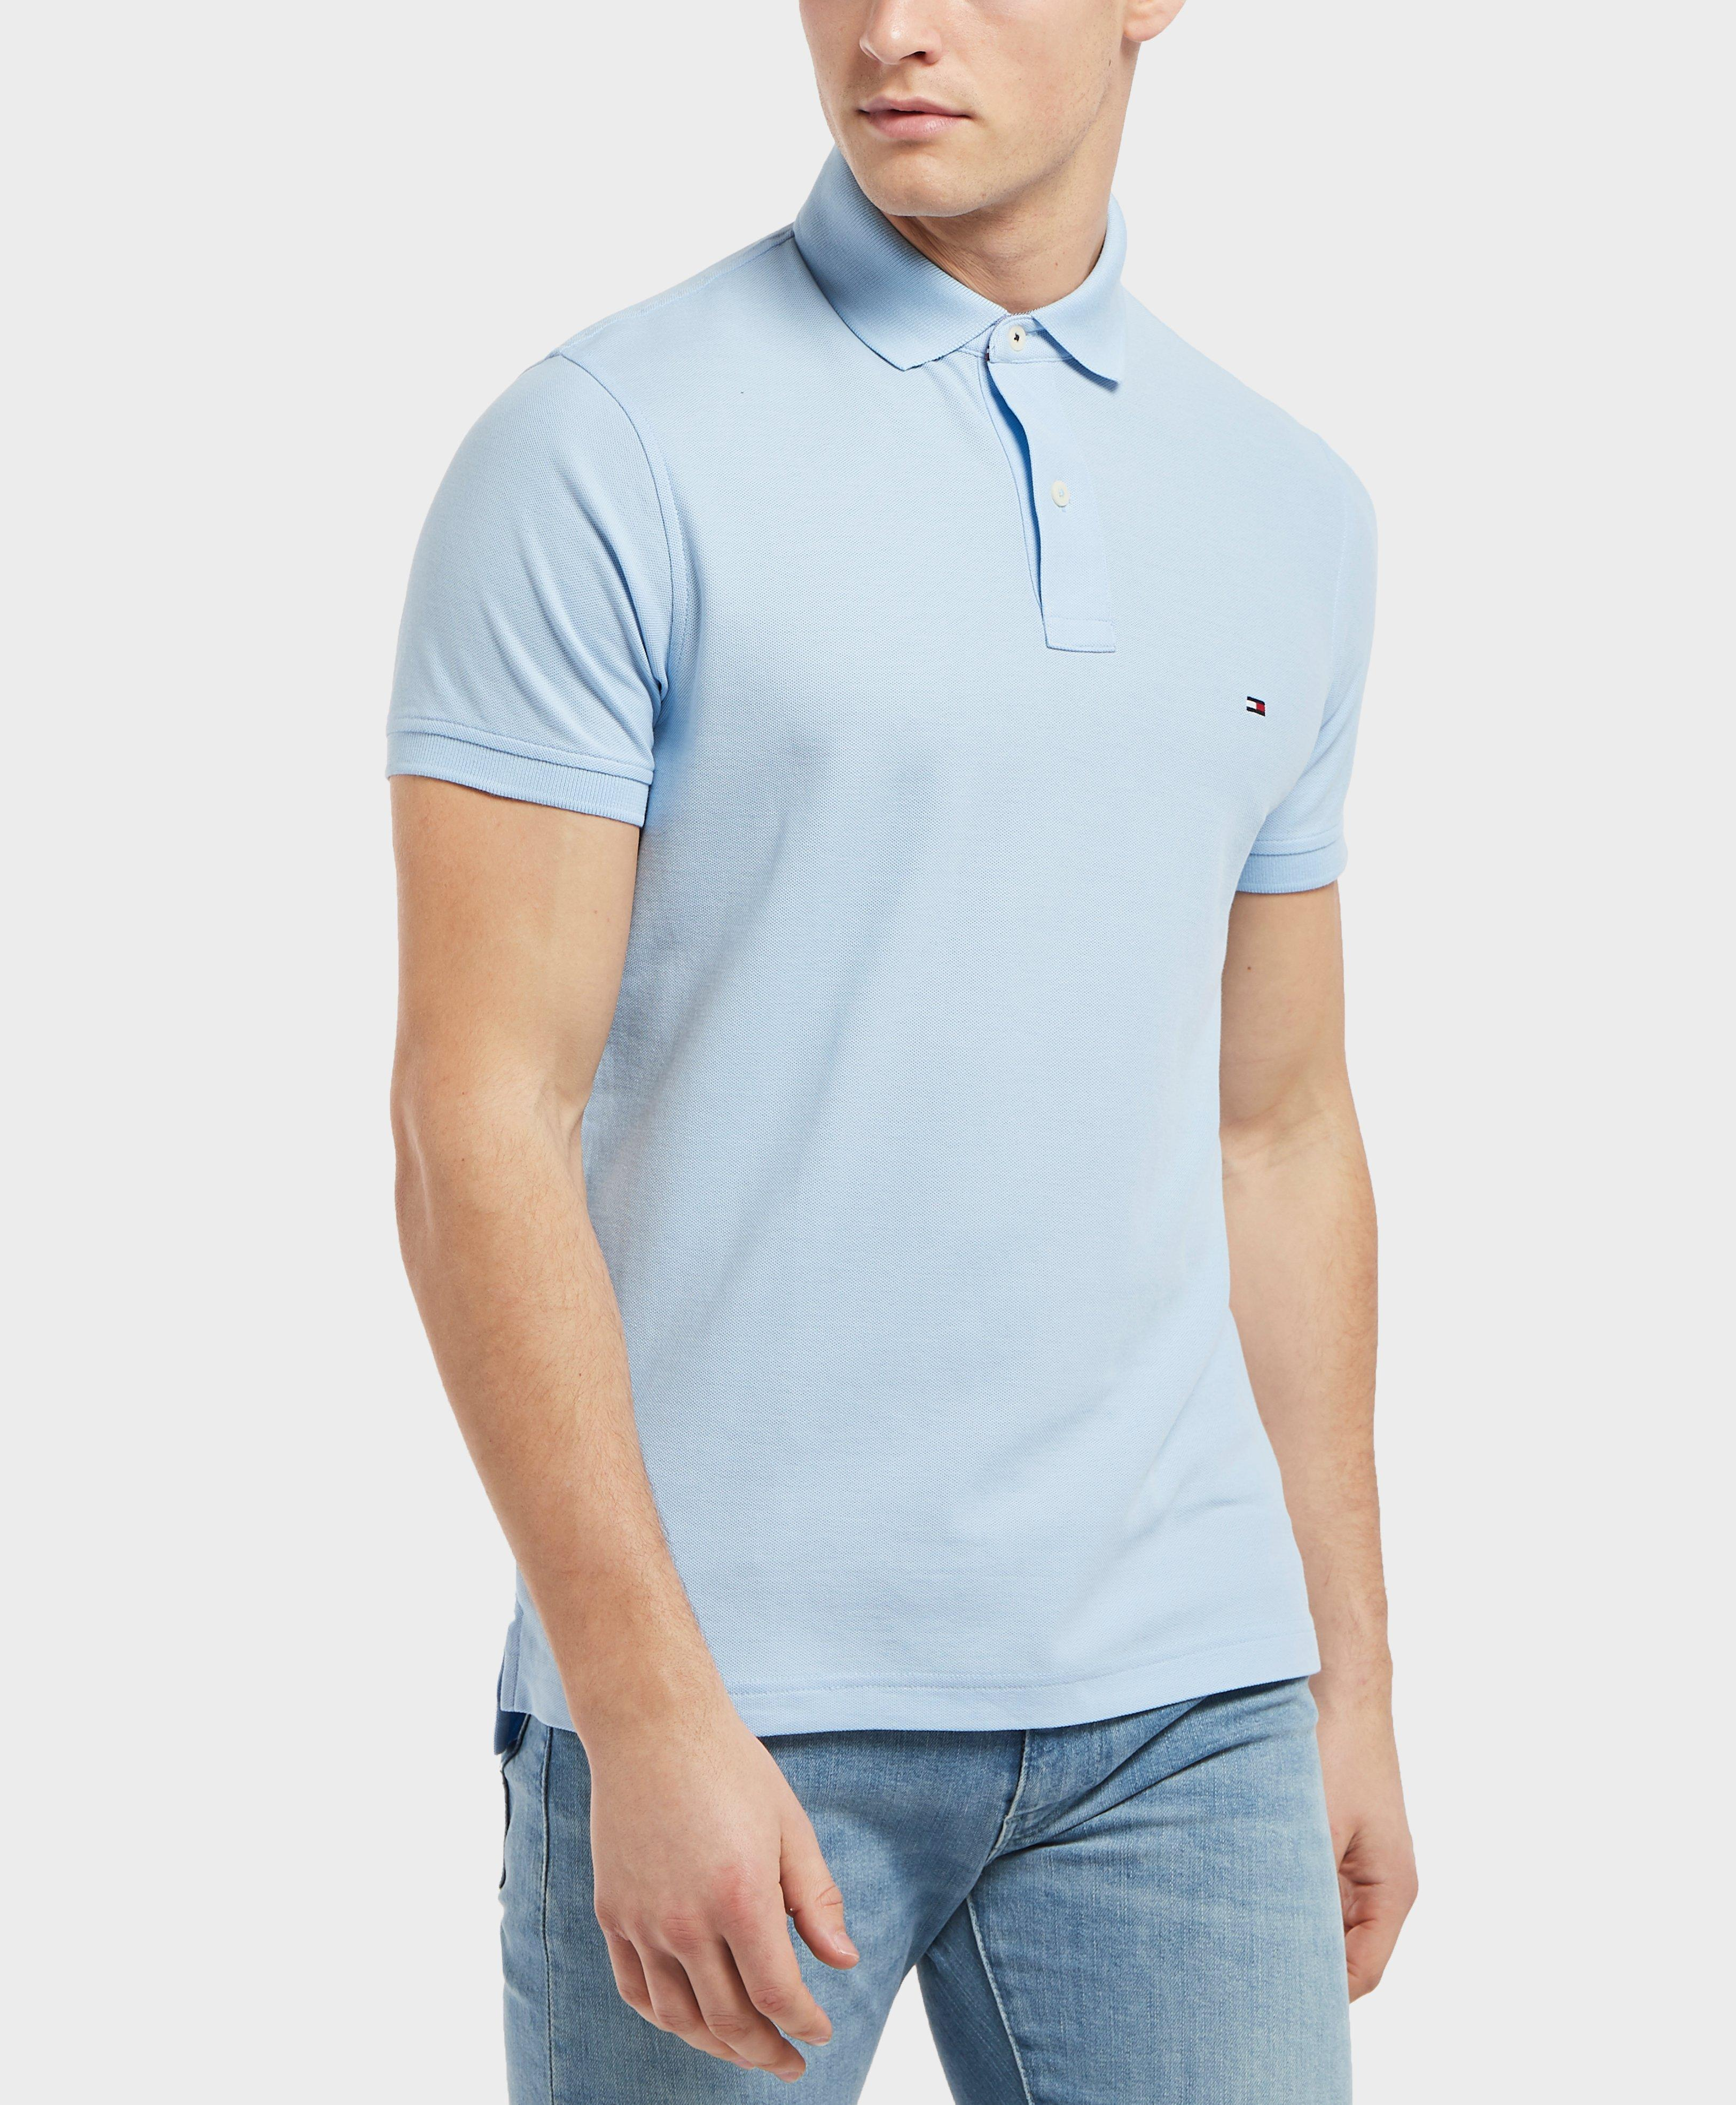 35a6456805a Tommy Hilfiger Core Short Sleeve Slim Polo Shirt in Blue for Men - Lyst